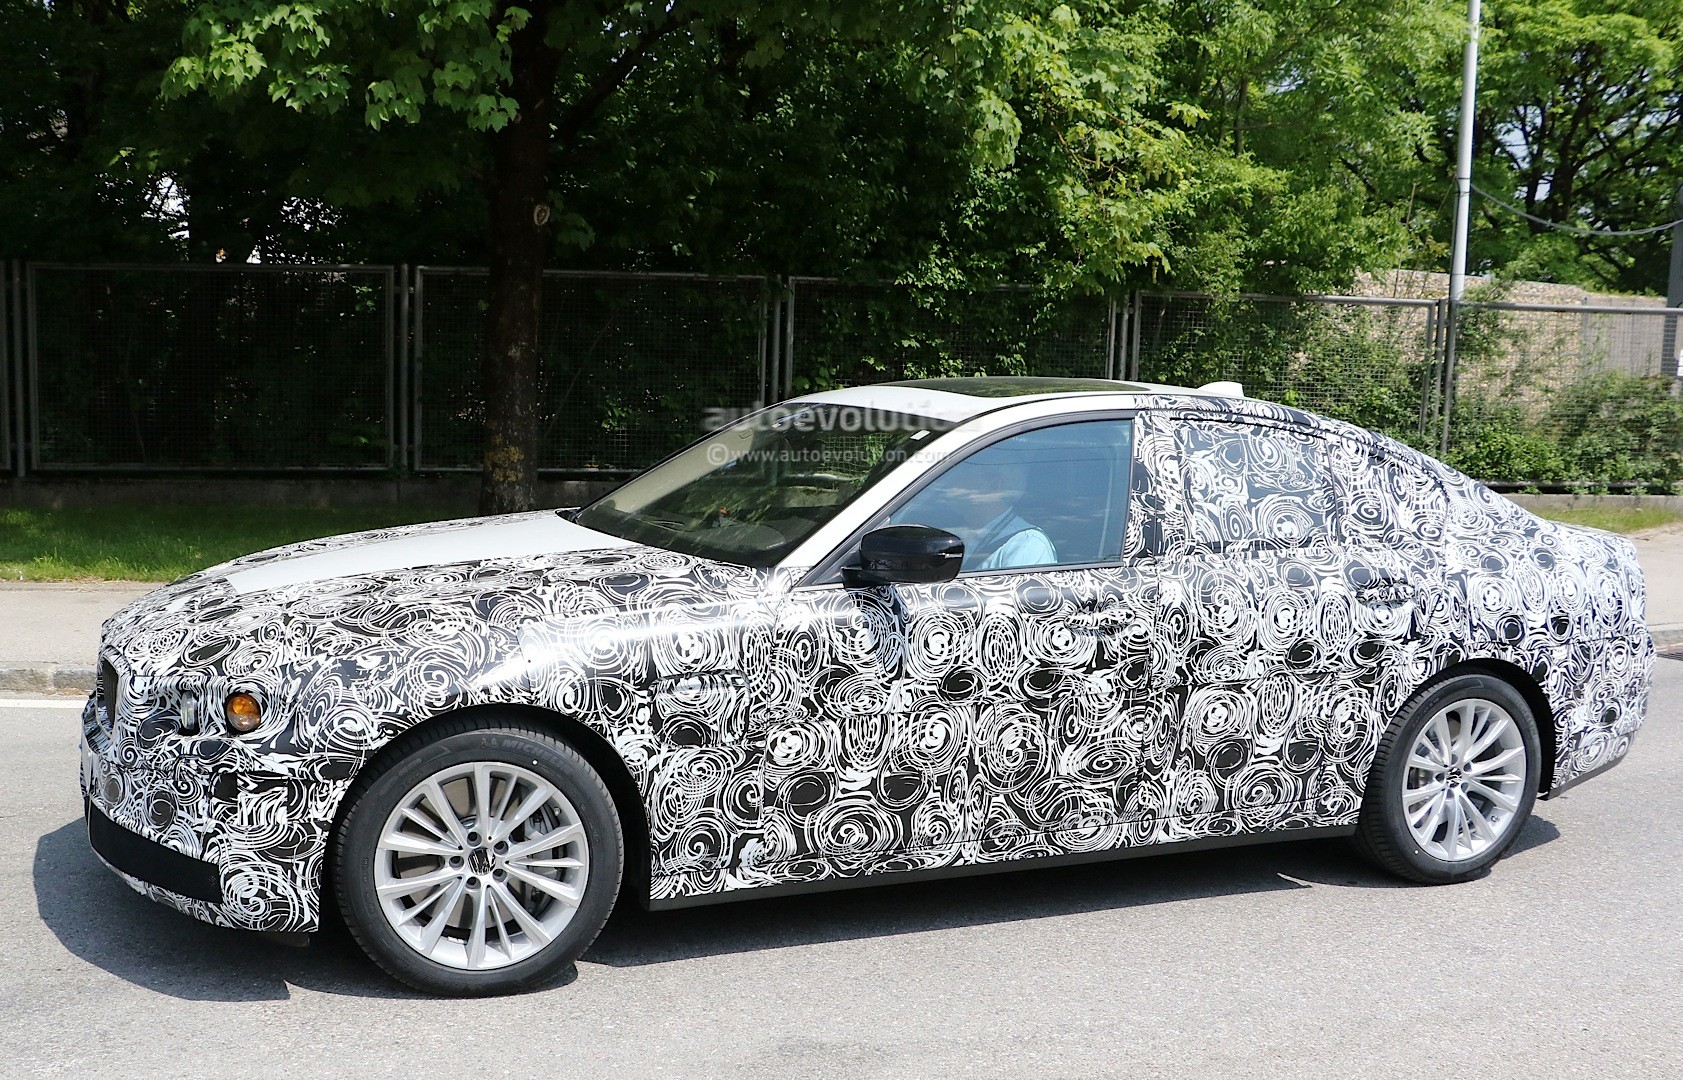 Spyshots AllNew BMW M G Test Mule Or Series M Performance - All new bmw cars